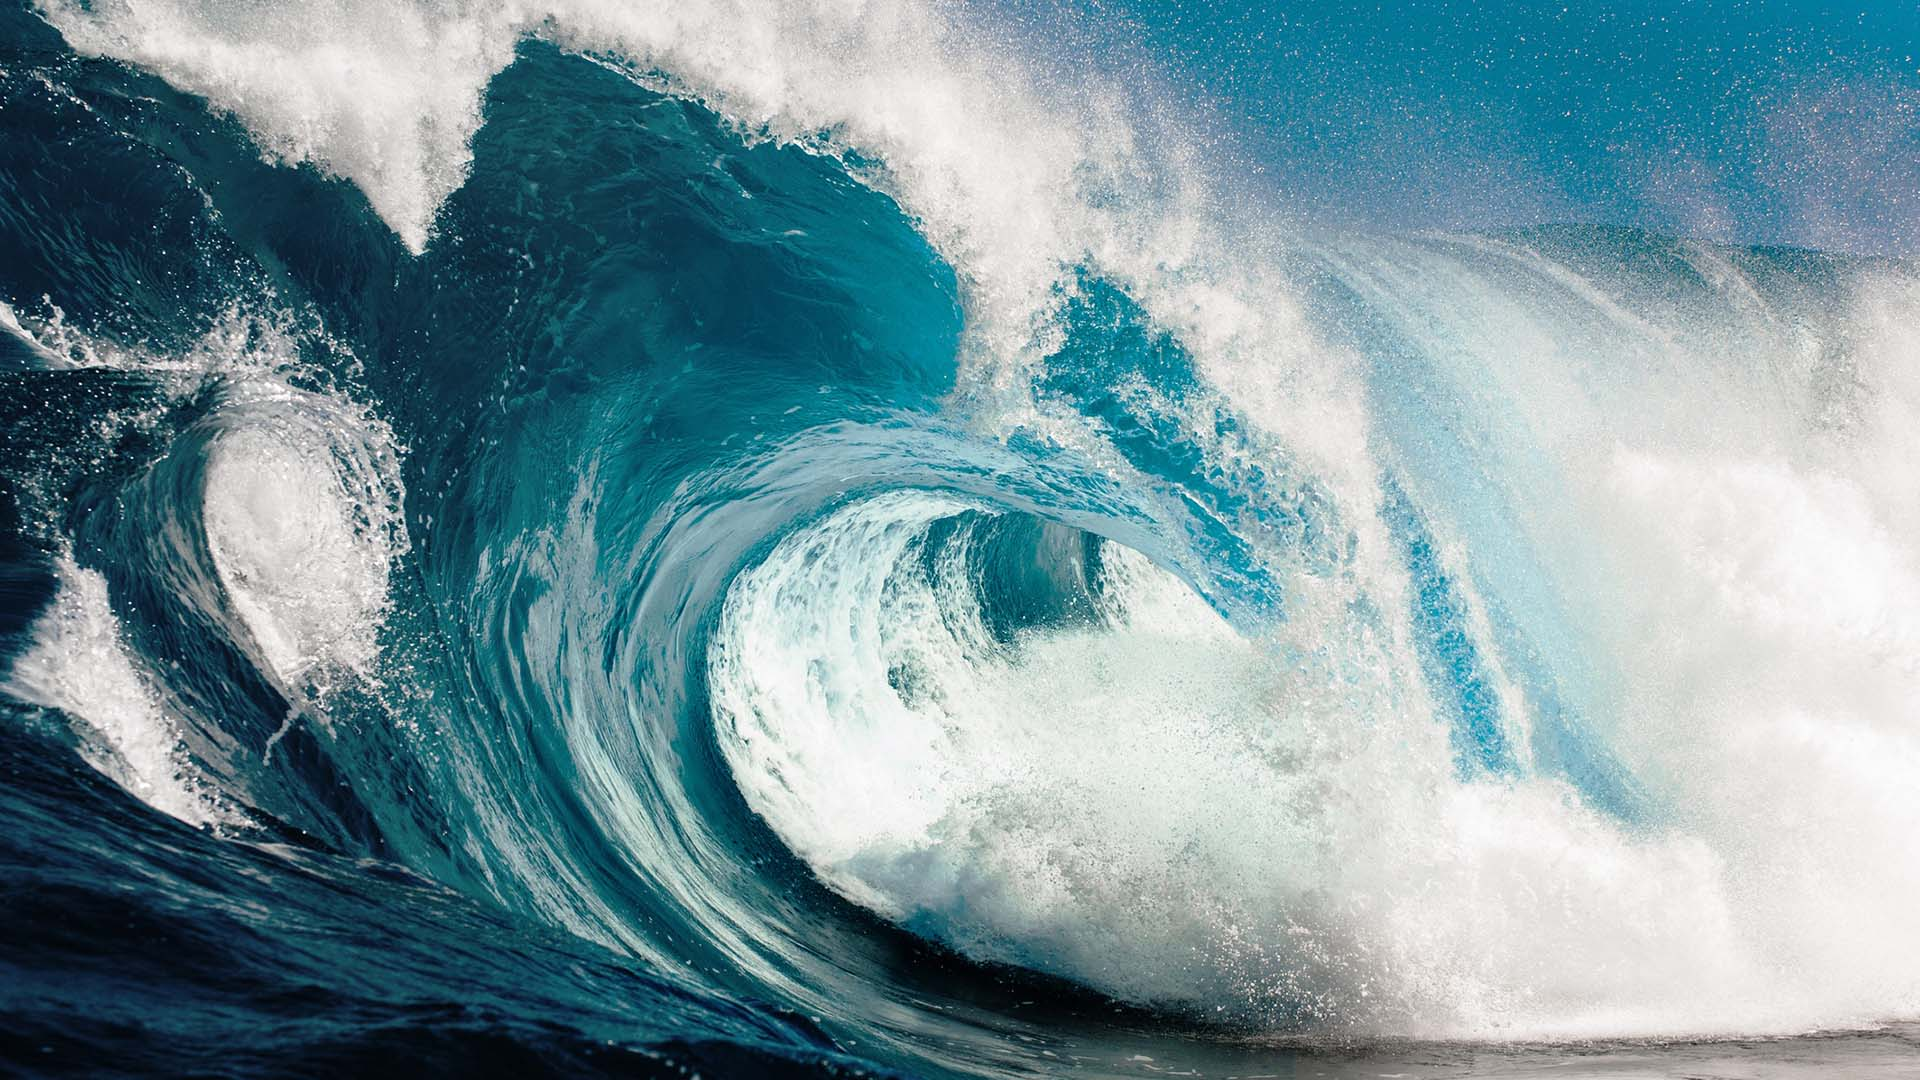 Exponential Technologies Have Incredible Effects, Like Tsunamis